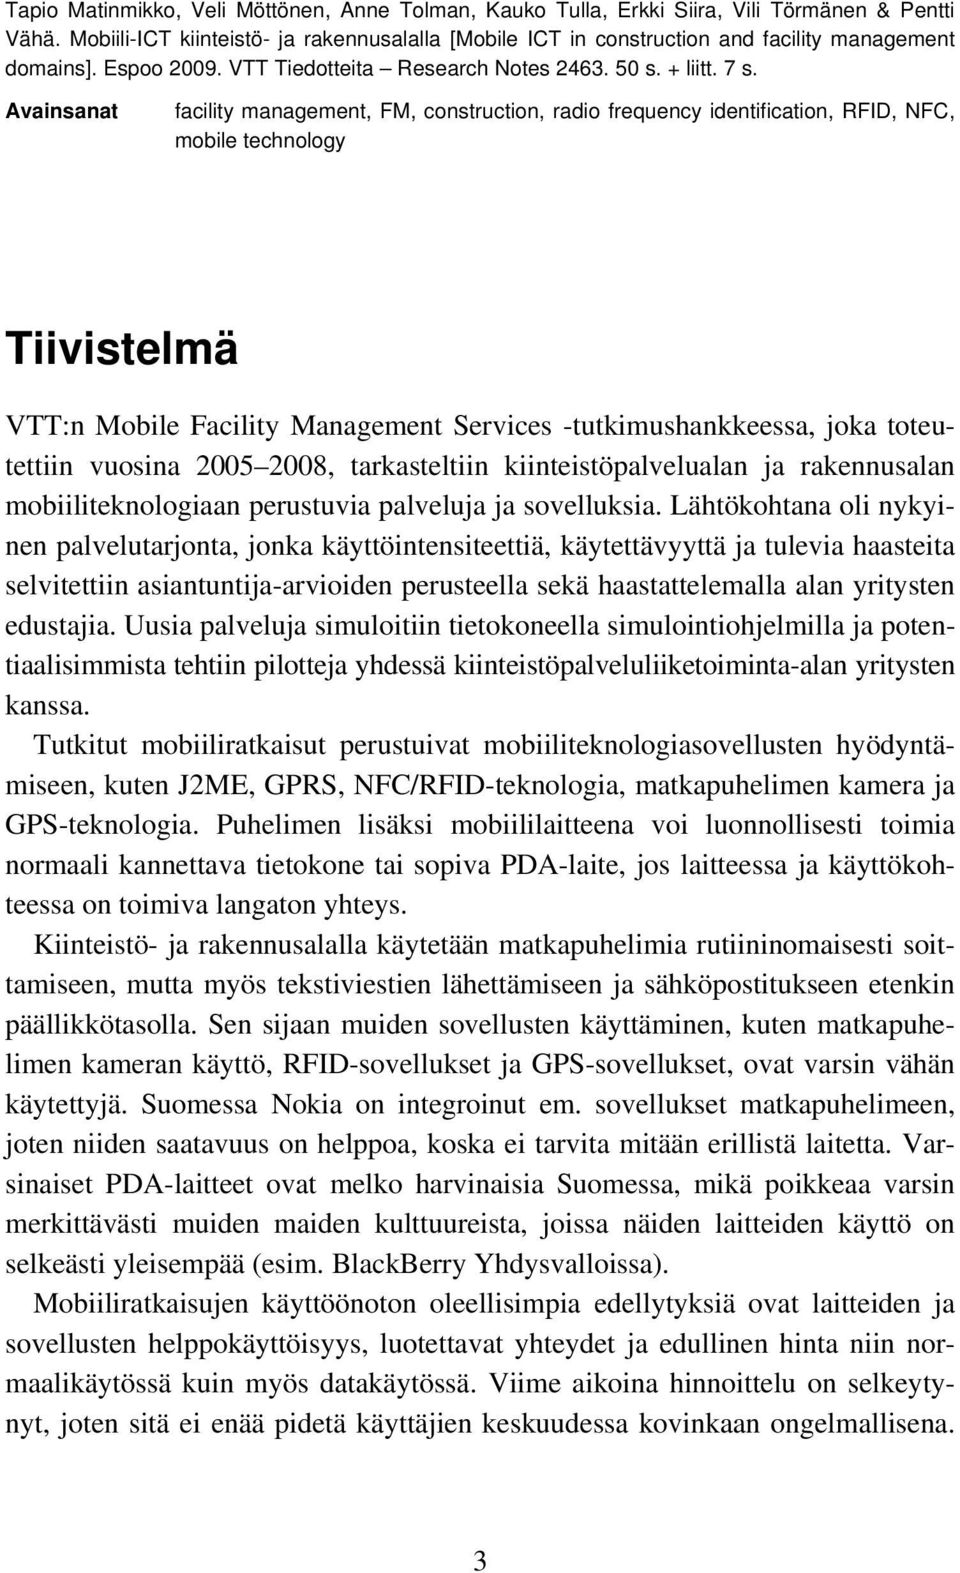 Avainsanat facility management, FM, construction, radio frequency identification, RFID, NFC, mobile technology Tiivistelmä VTT:n Mobile Facility Management Services -tutkimushankkeessa, joka